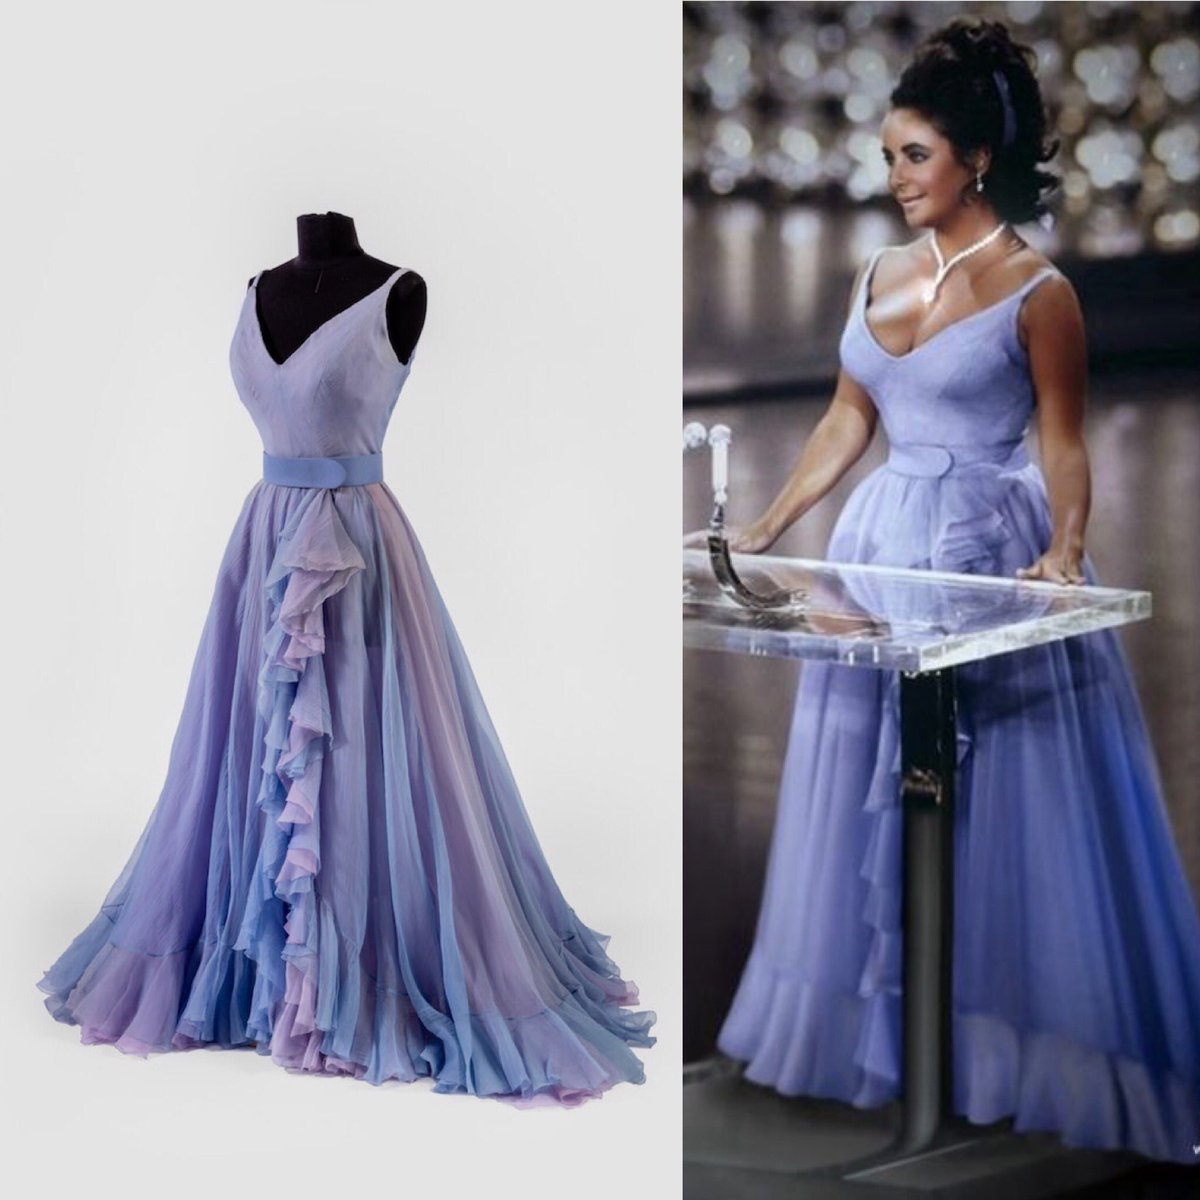 """Dr Kate Strasdin no Twitter: """"A thousand watts of #Hollywood glamour here  in the gorgeous shape of #ElizabethTaylor in ruffled lilac designed by  Edith Head. Taylor wore the dress to the 1970 #"""